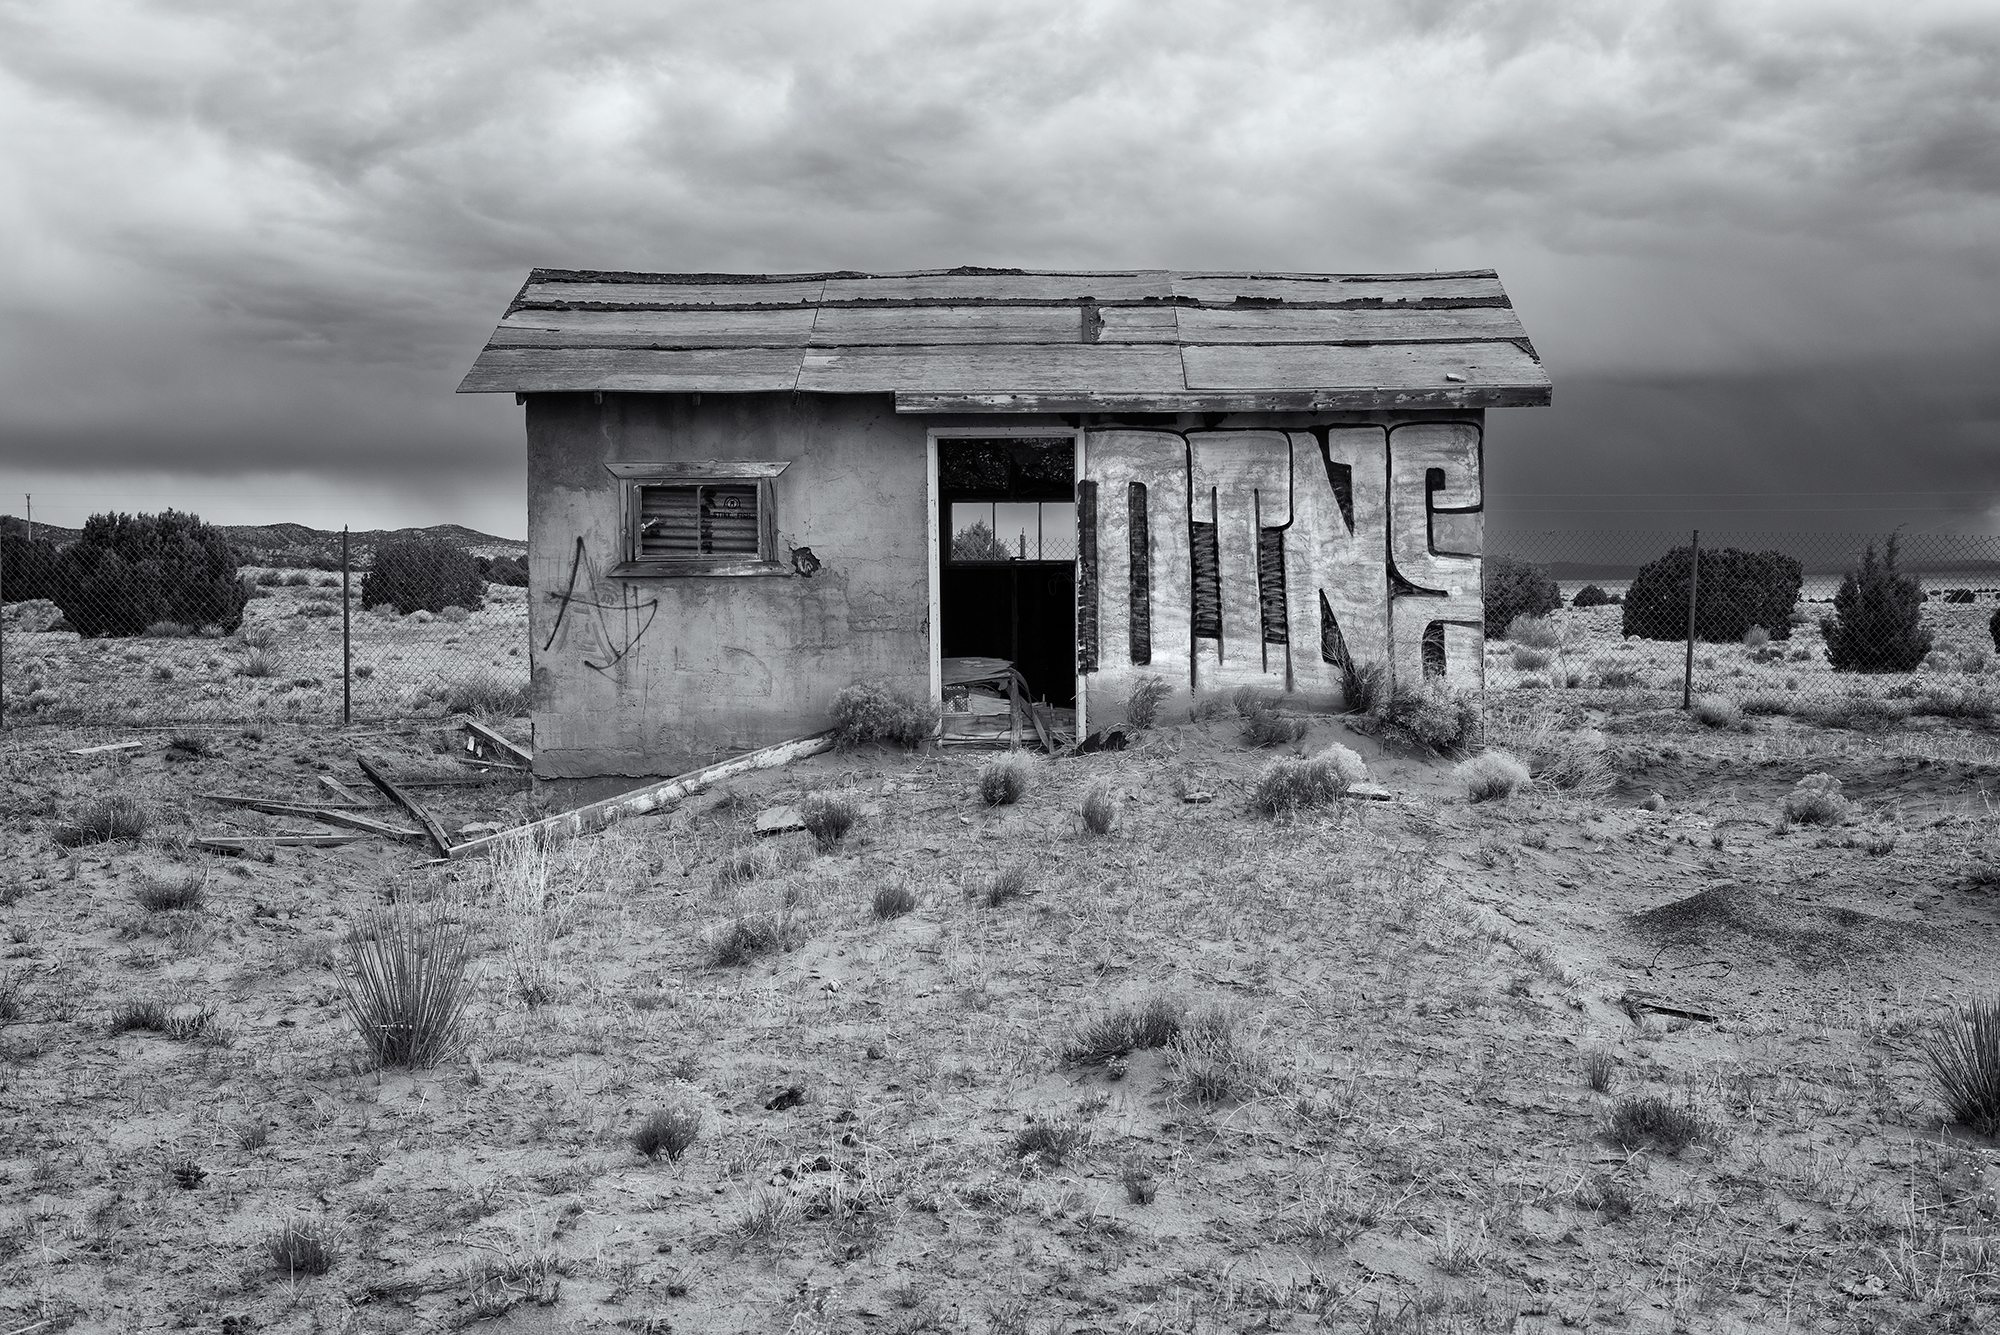 Abandoned. Navajo Nation, Arizona, 2016